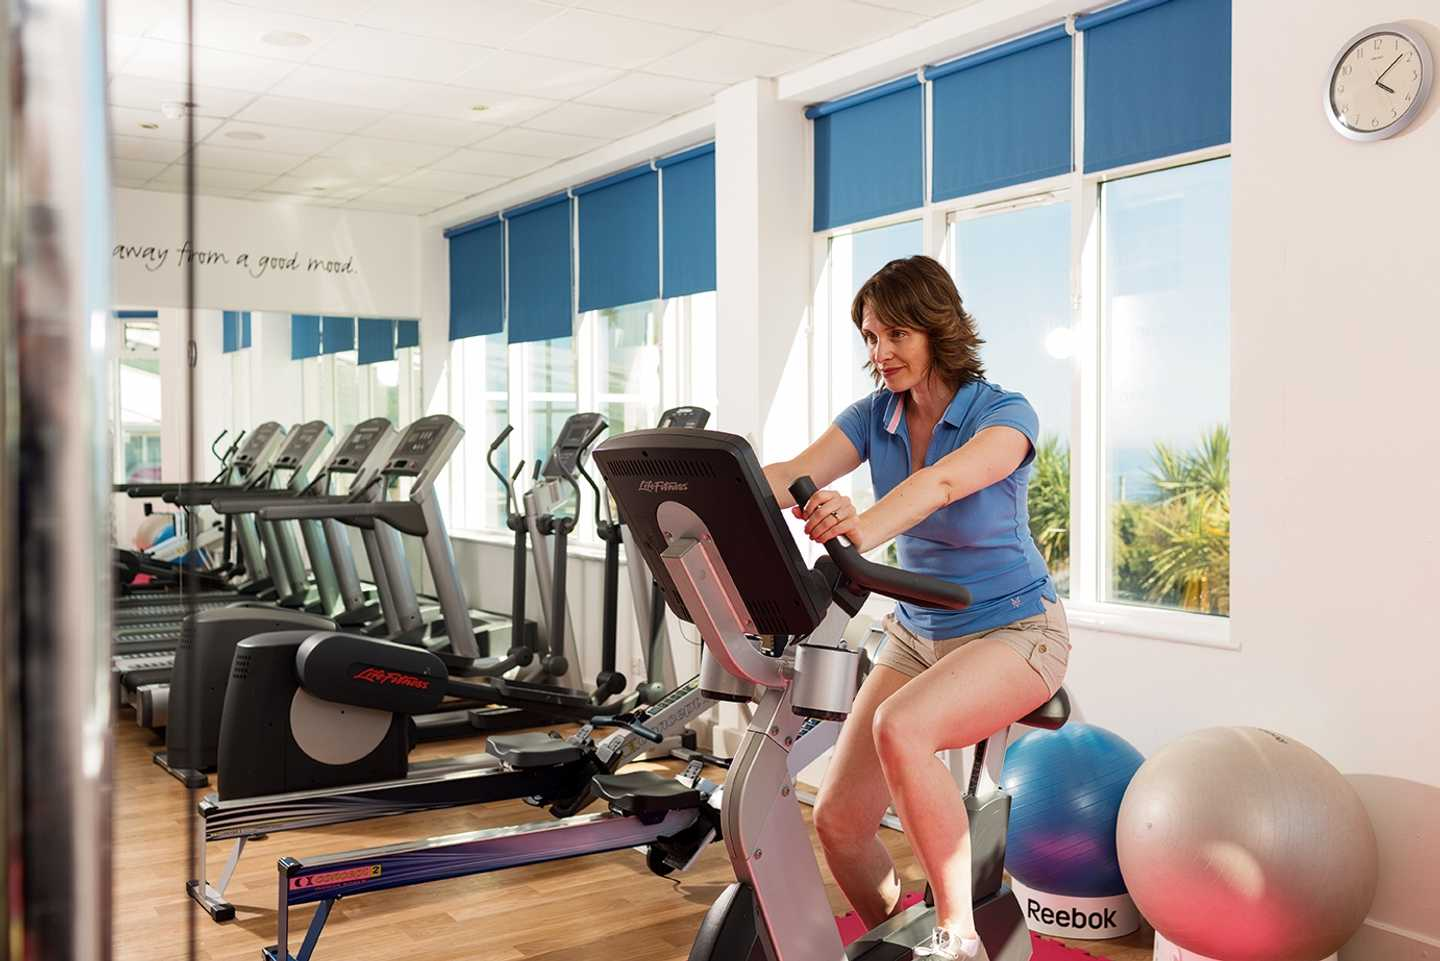 A lady using the exercise bike in our owners' gym